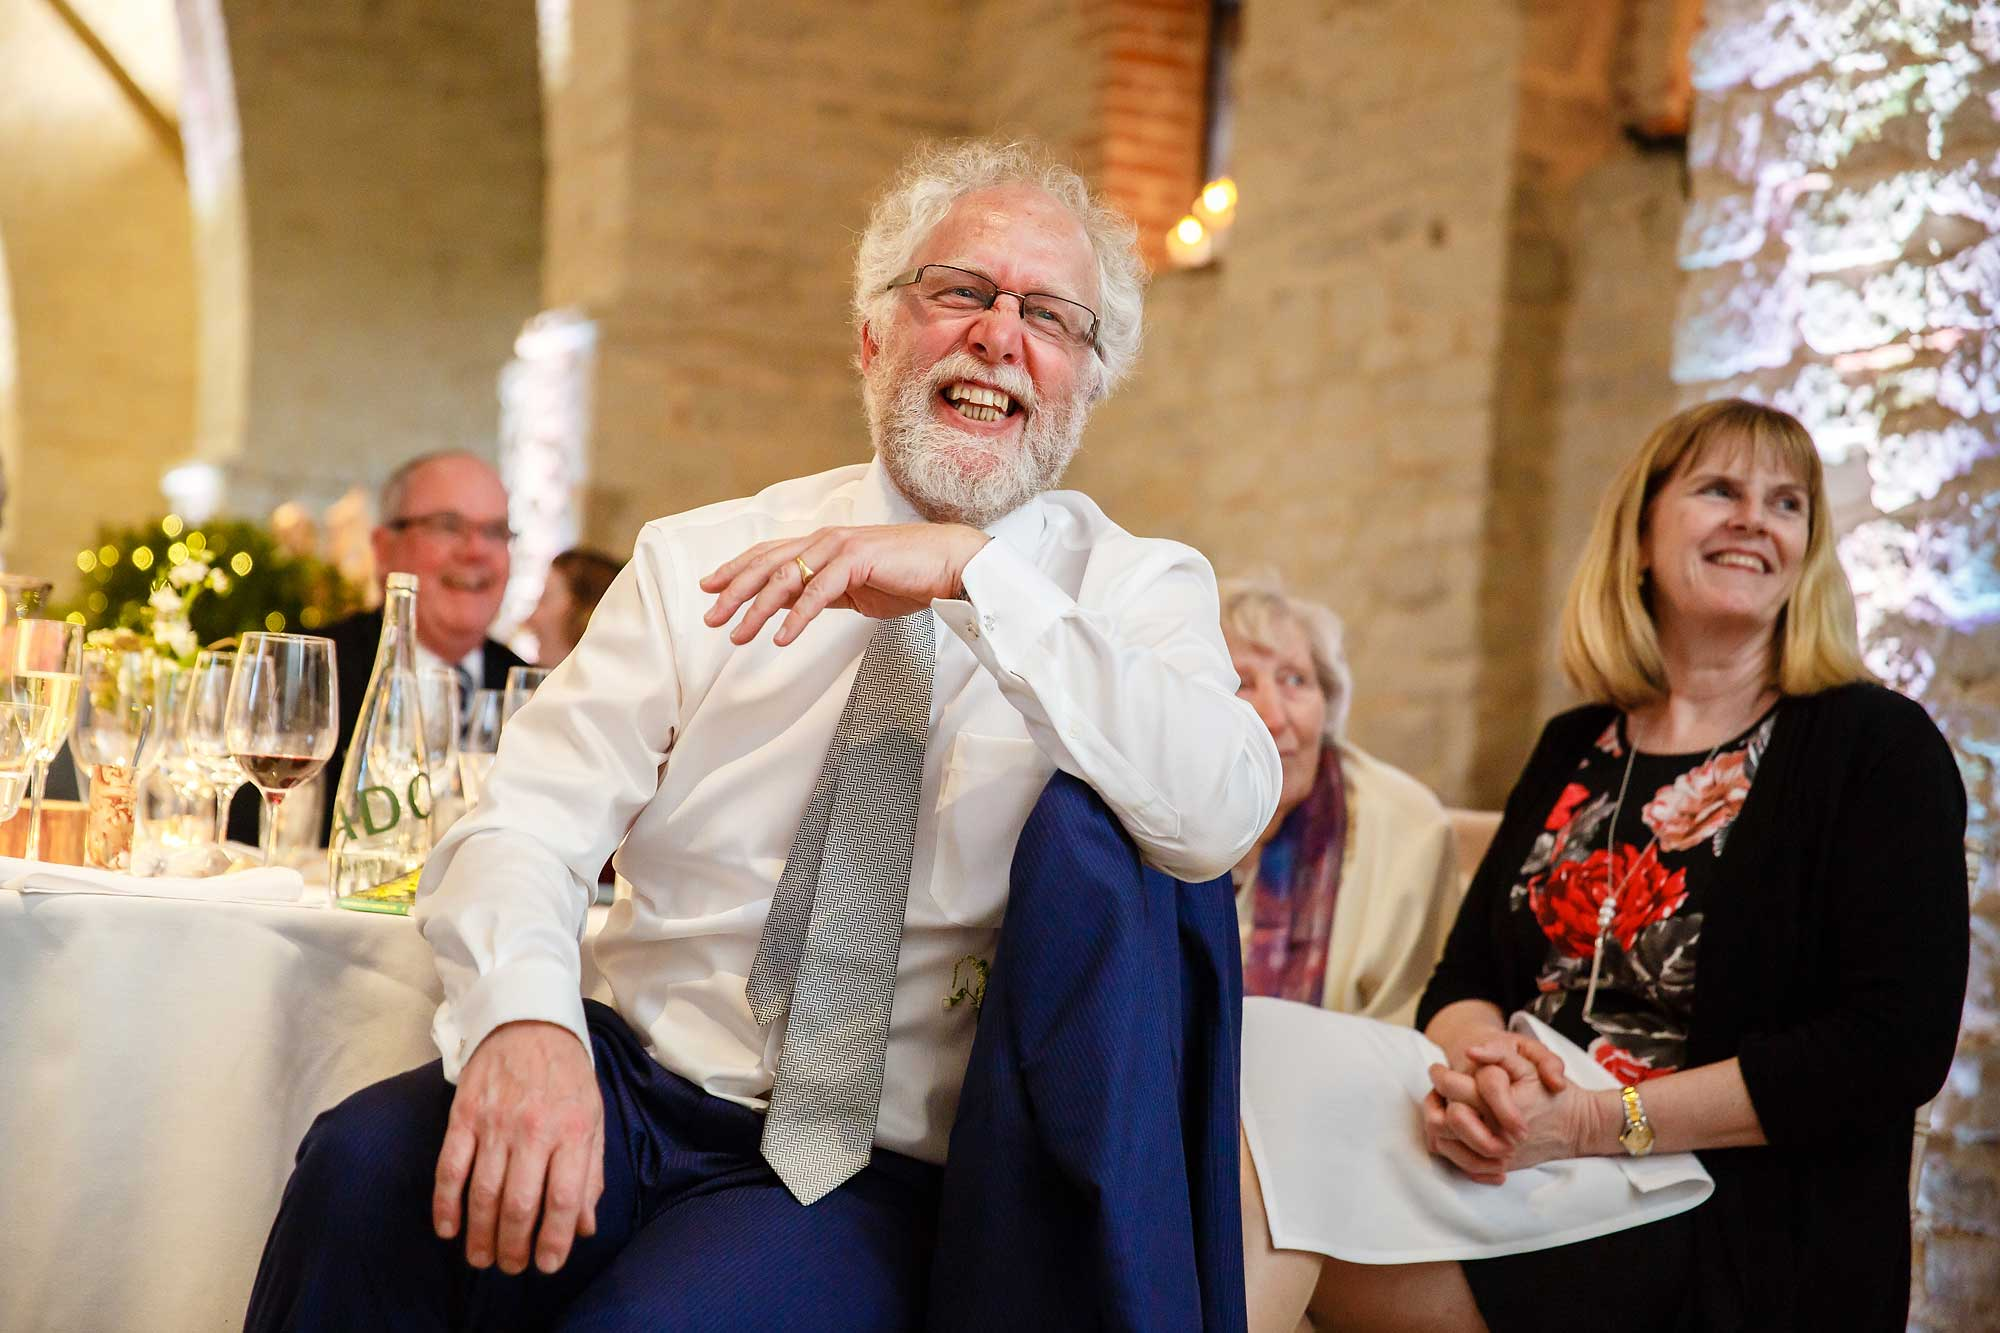 Dad laughing at wedding hampshire